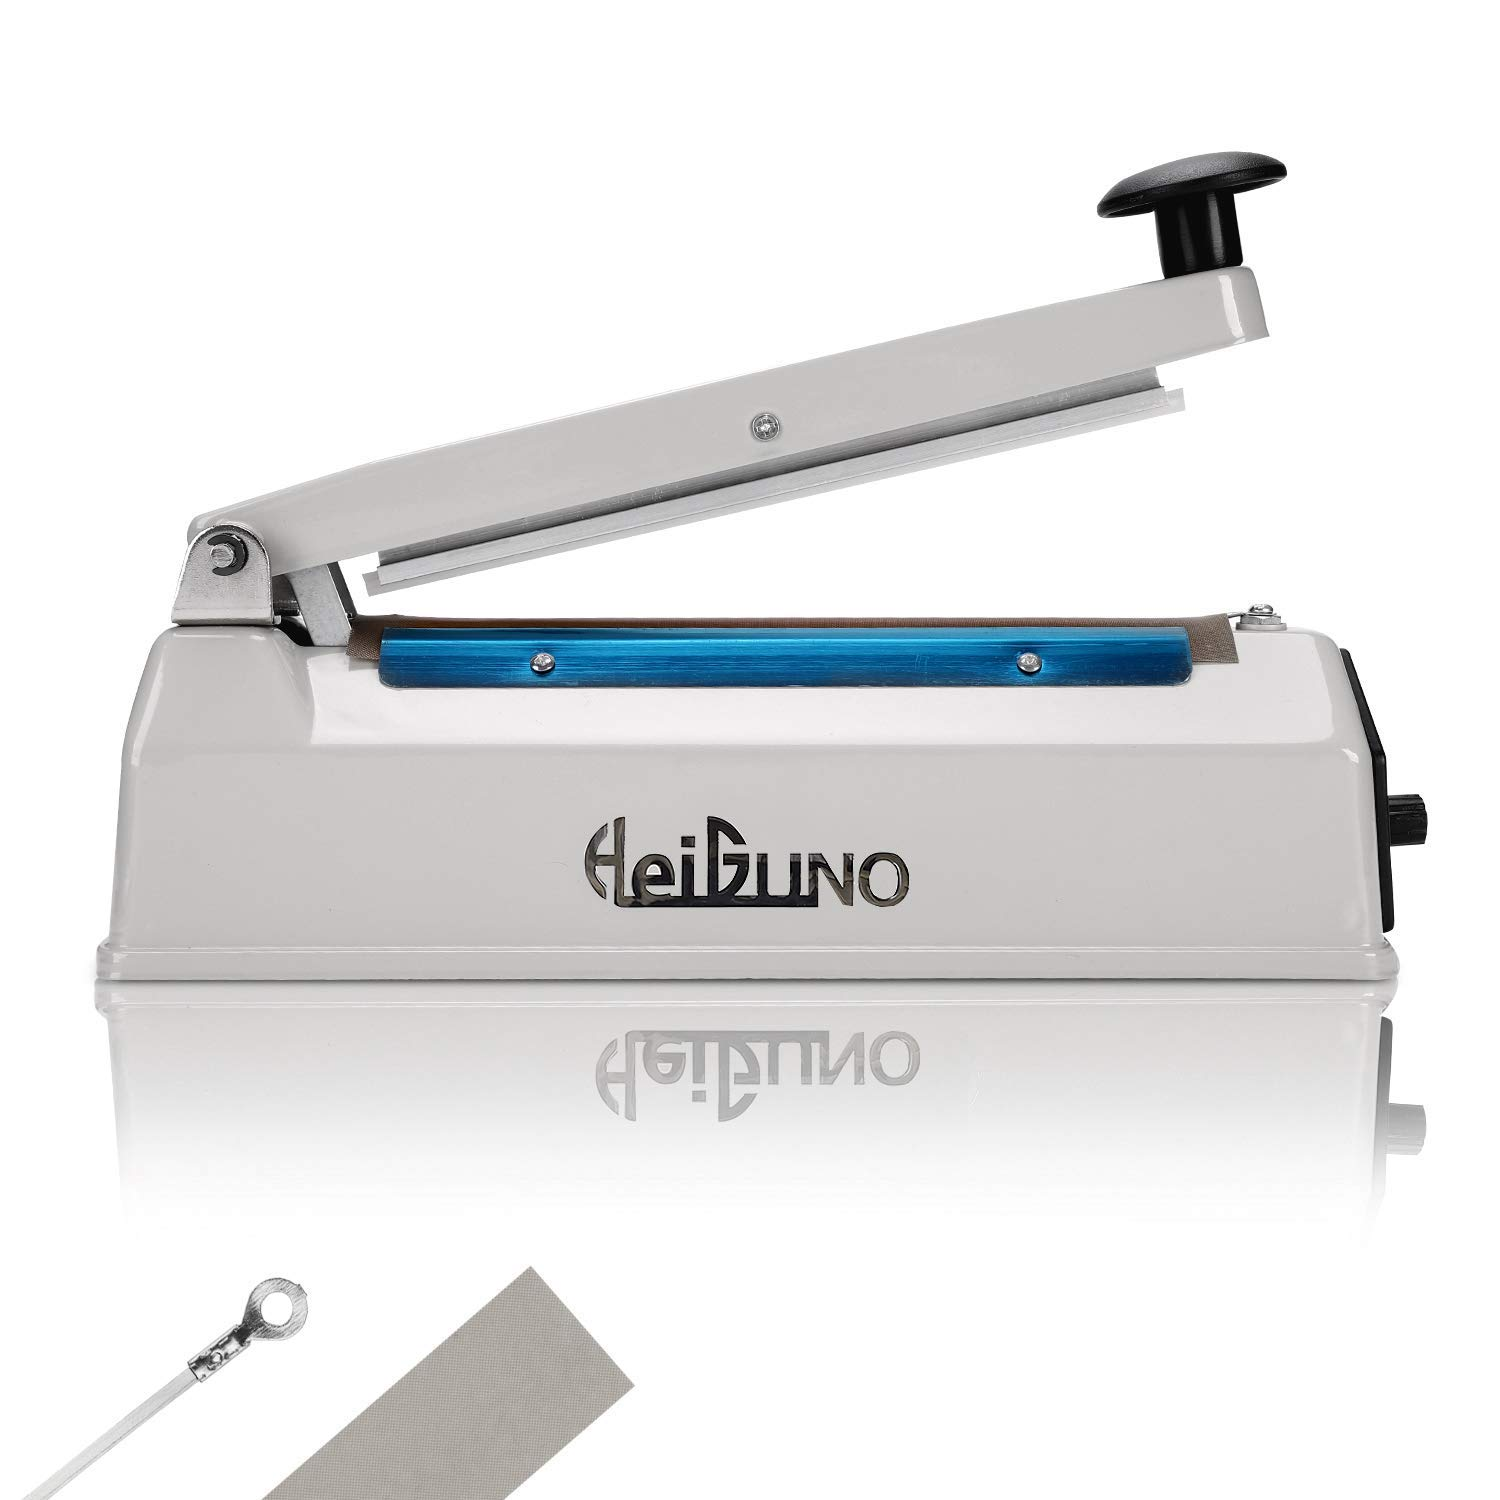 HeiGuno 8'' / 200mm 110V Metal Shell Impulse Manual Hand Sealer Heat Sealing Machine Spare Teflon & Sealing Elements